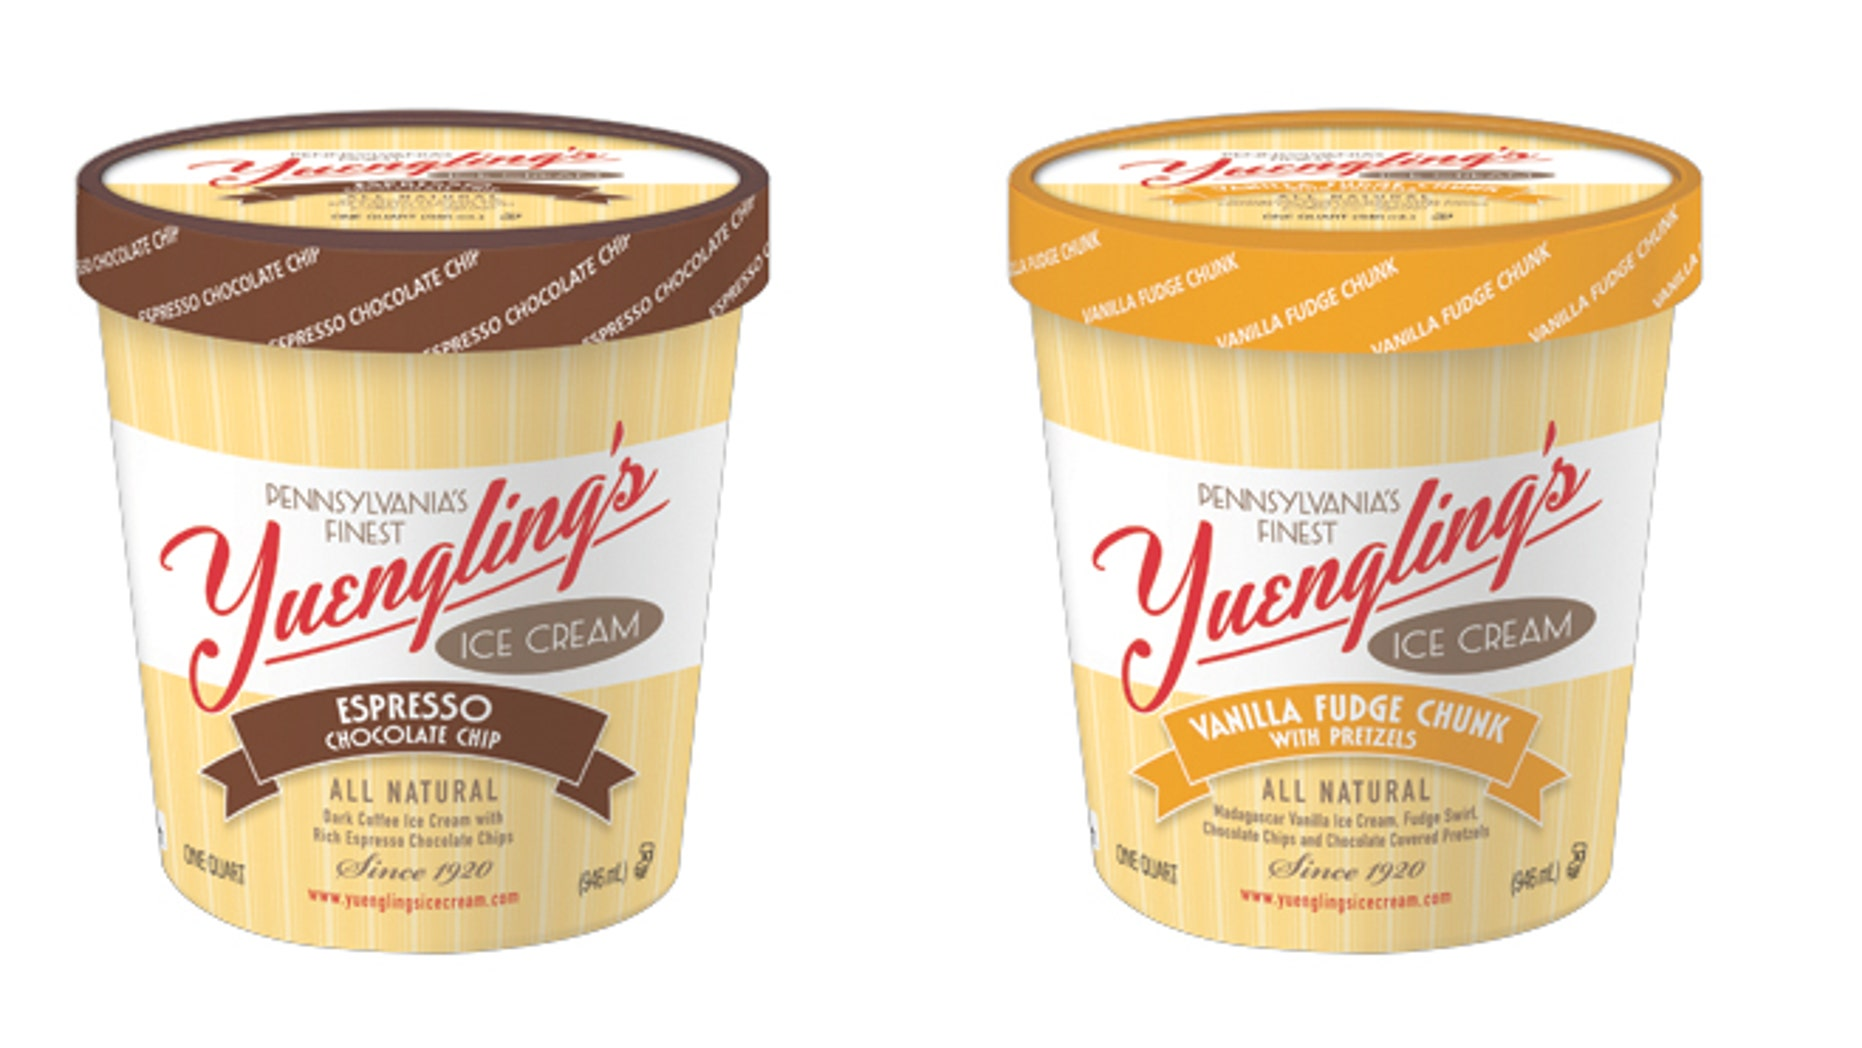 Yuengling's is bringing back its ice cream after 30 years.